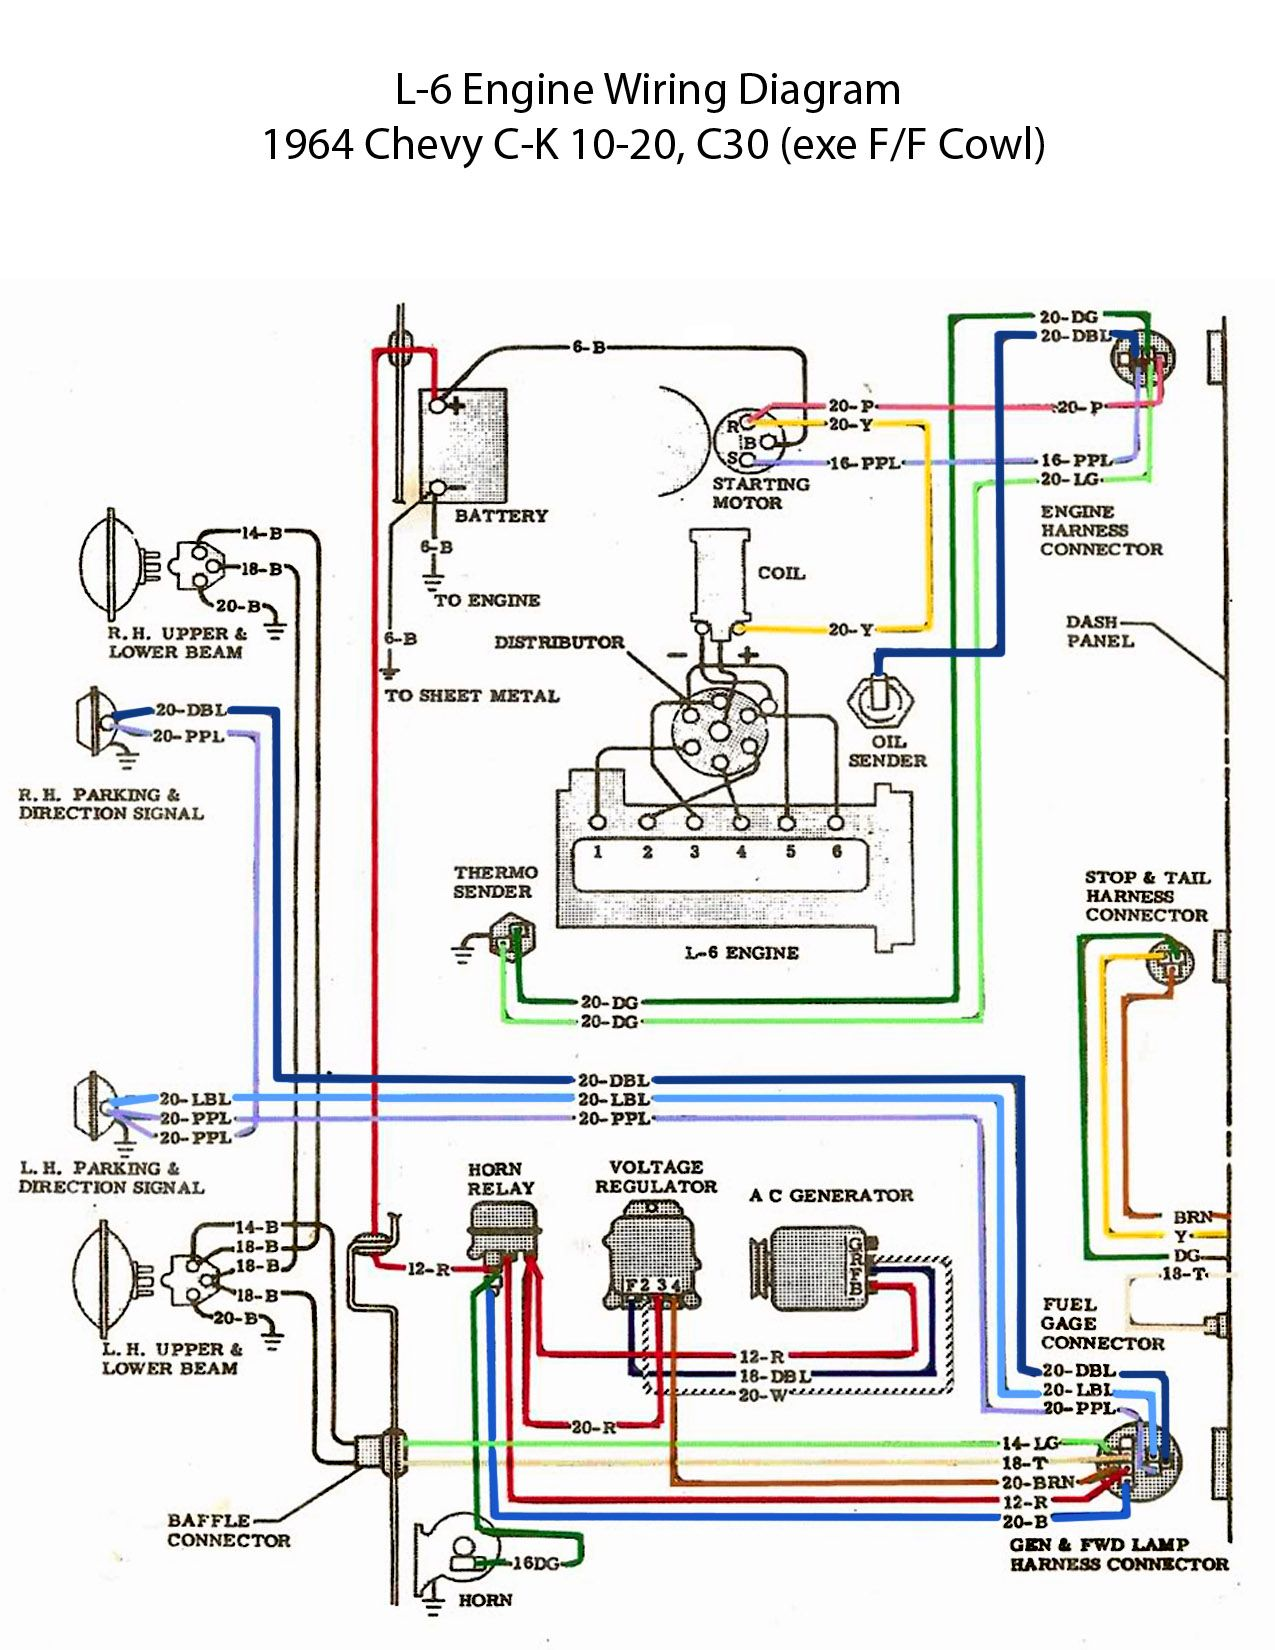 52f445b9f6cba1e2ba90979cb5234ed8 electric l 6 engine wiring diagram '60s chevy c10 wiring Residential Electrical Wiring Diagrams at virtualis.co